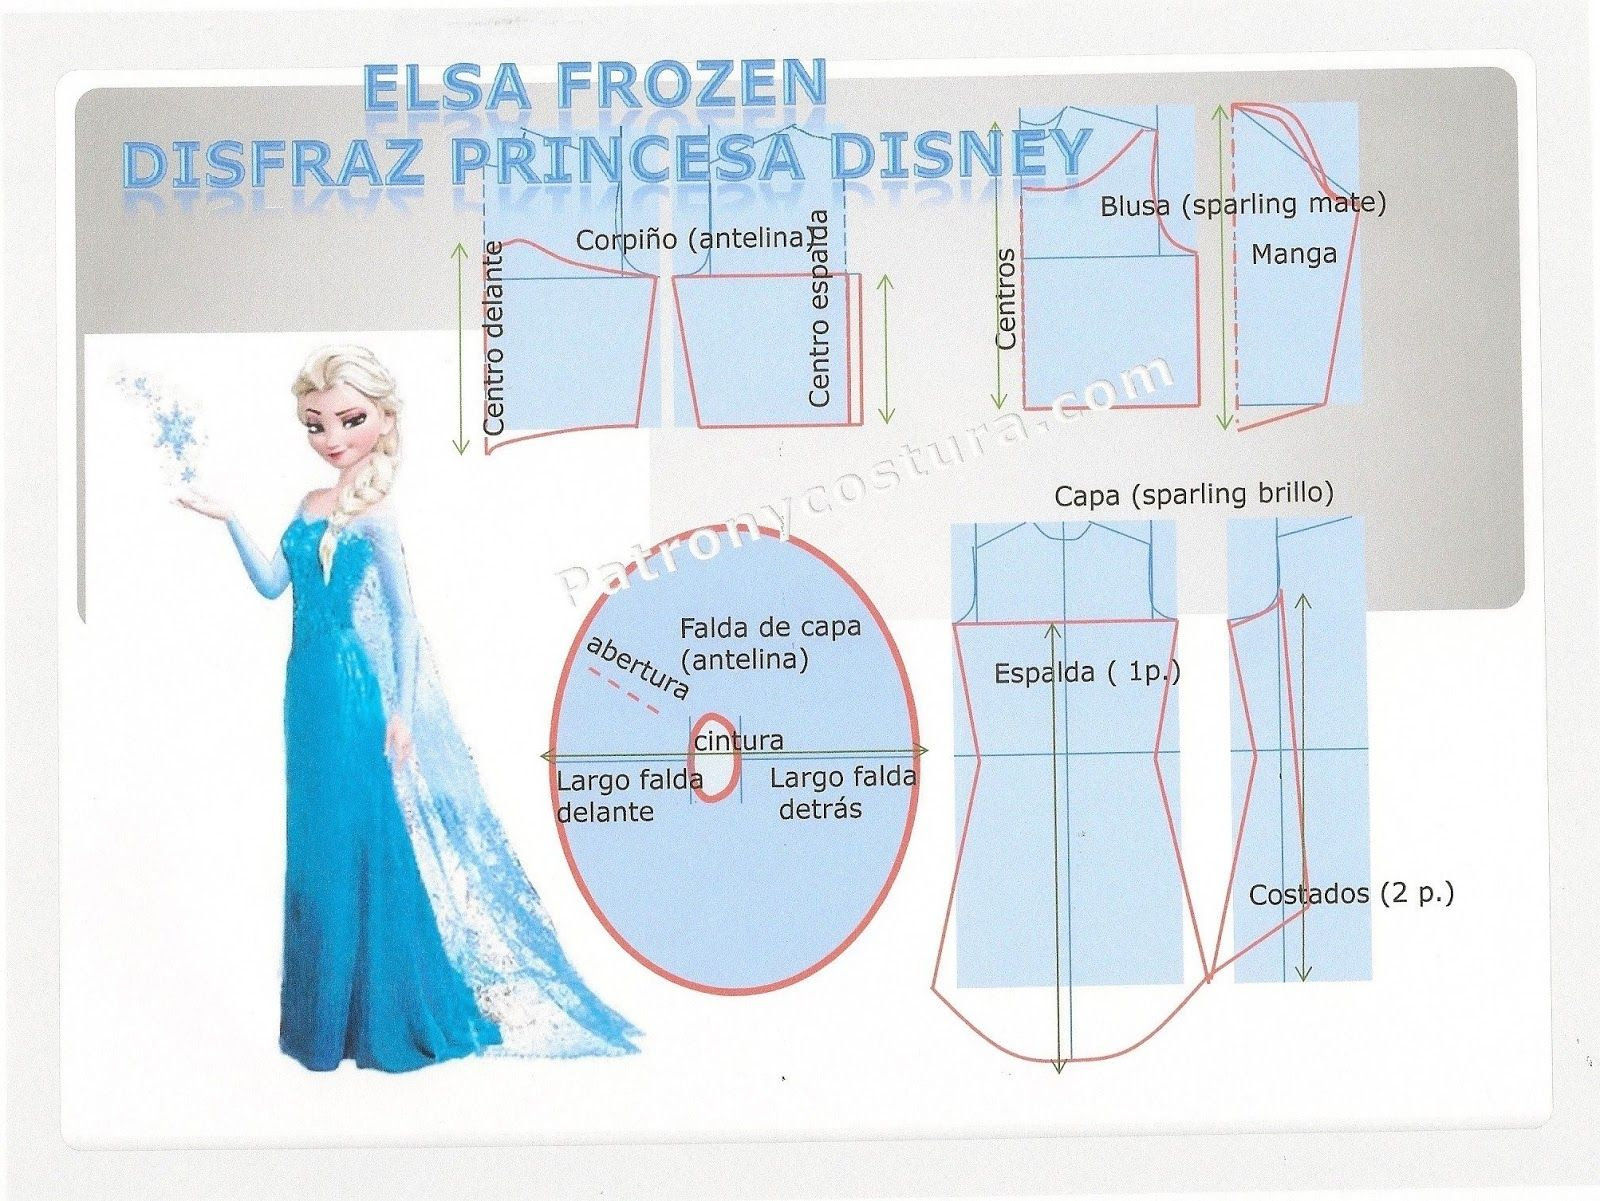 Best 25 Imagenes de frozen ideas on Pinterest  Imgenes de